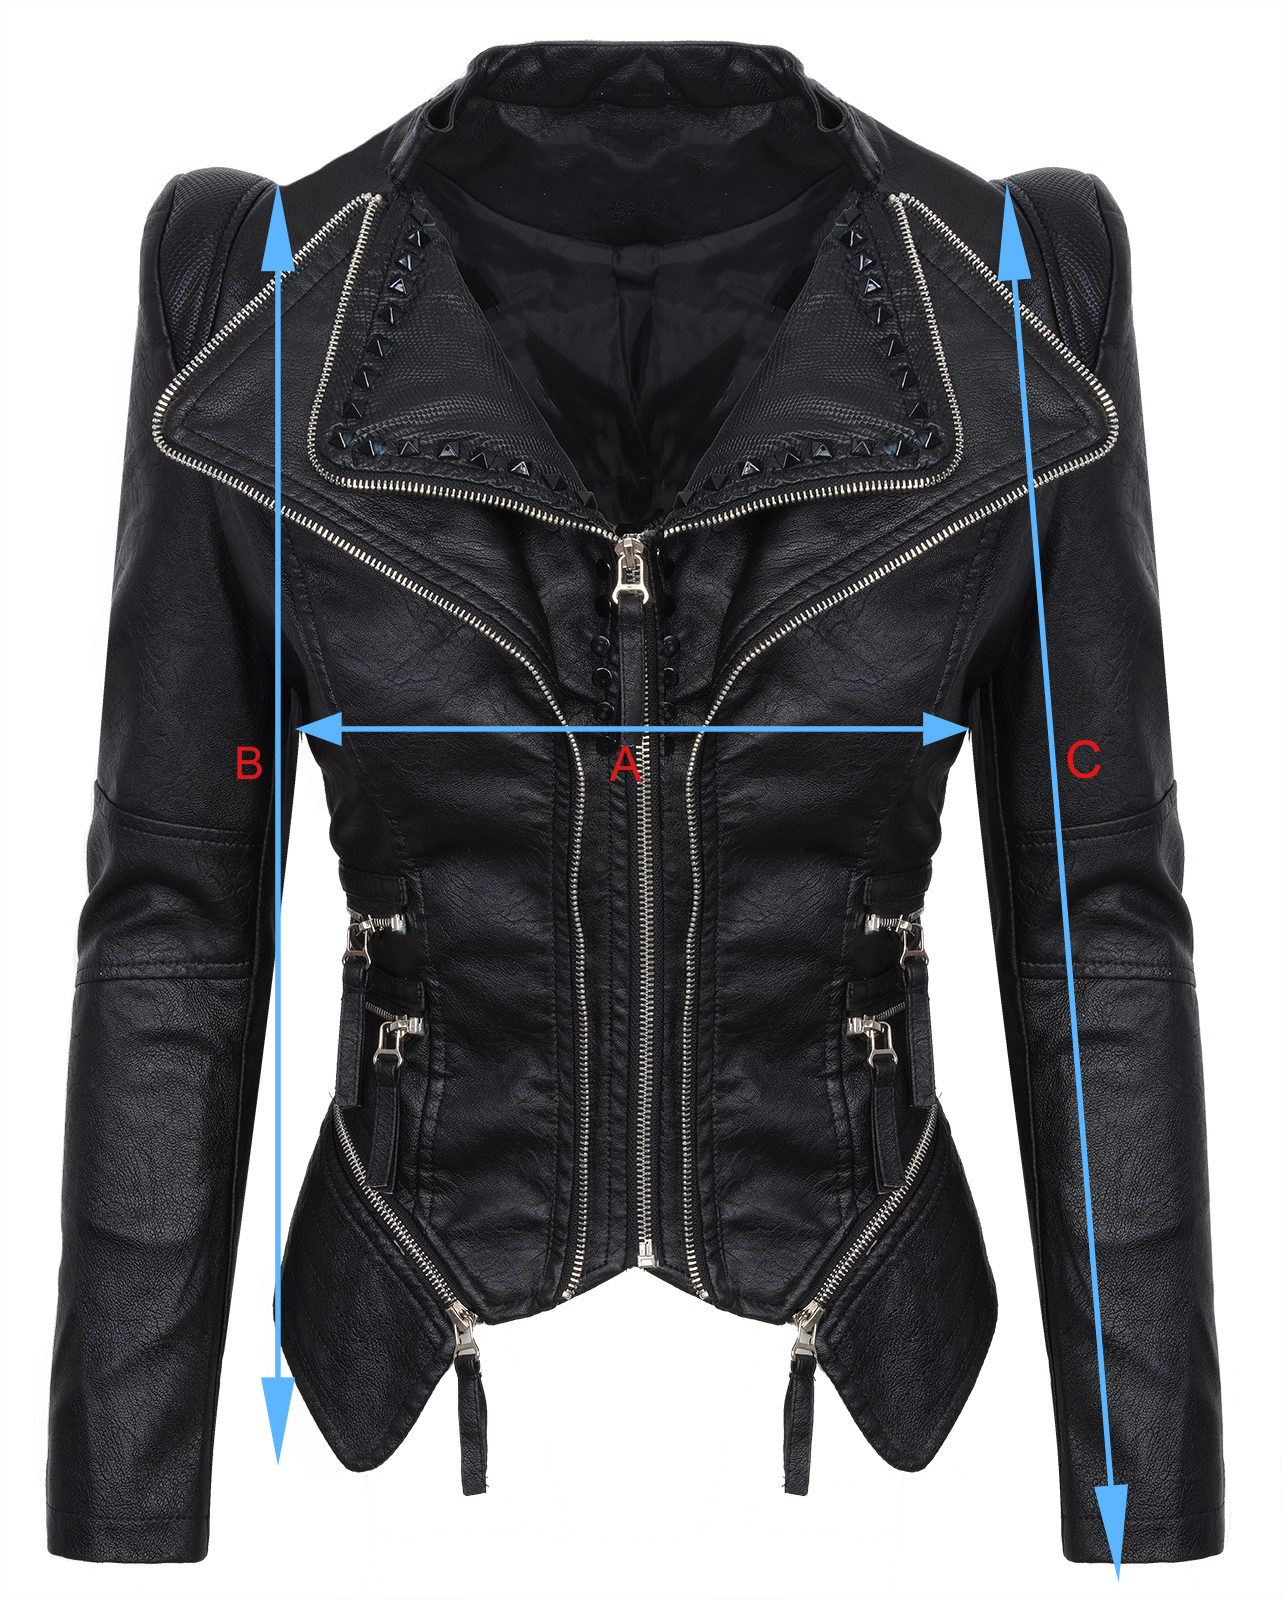 damen kunstleder jacke biker jacke bergangs jacke damenjacke d 311 s xl ebay. Black Bedroom Furniture Sets. Home Design Ideas